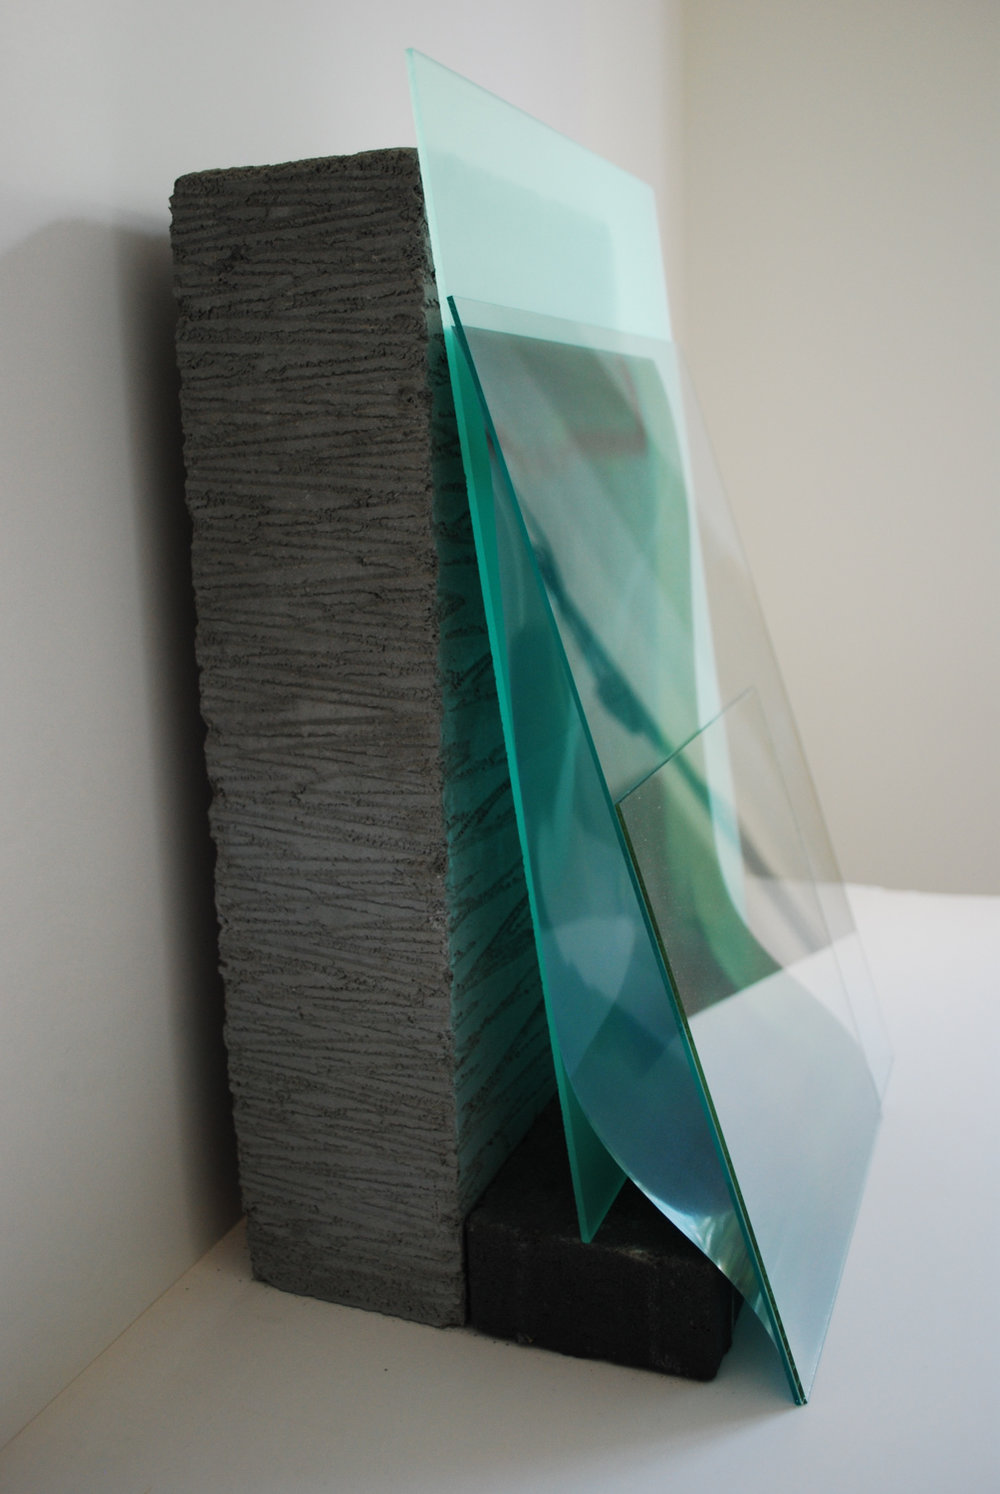 Holly Rowan Hesson,  Fluid , 2015, concrete block, photograph on acetate, perspex, glass, brick, 31 x 47 x 27cm